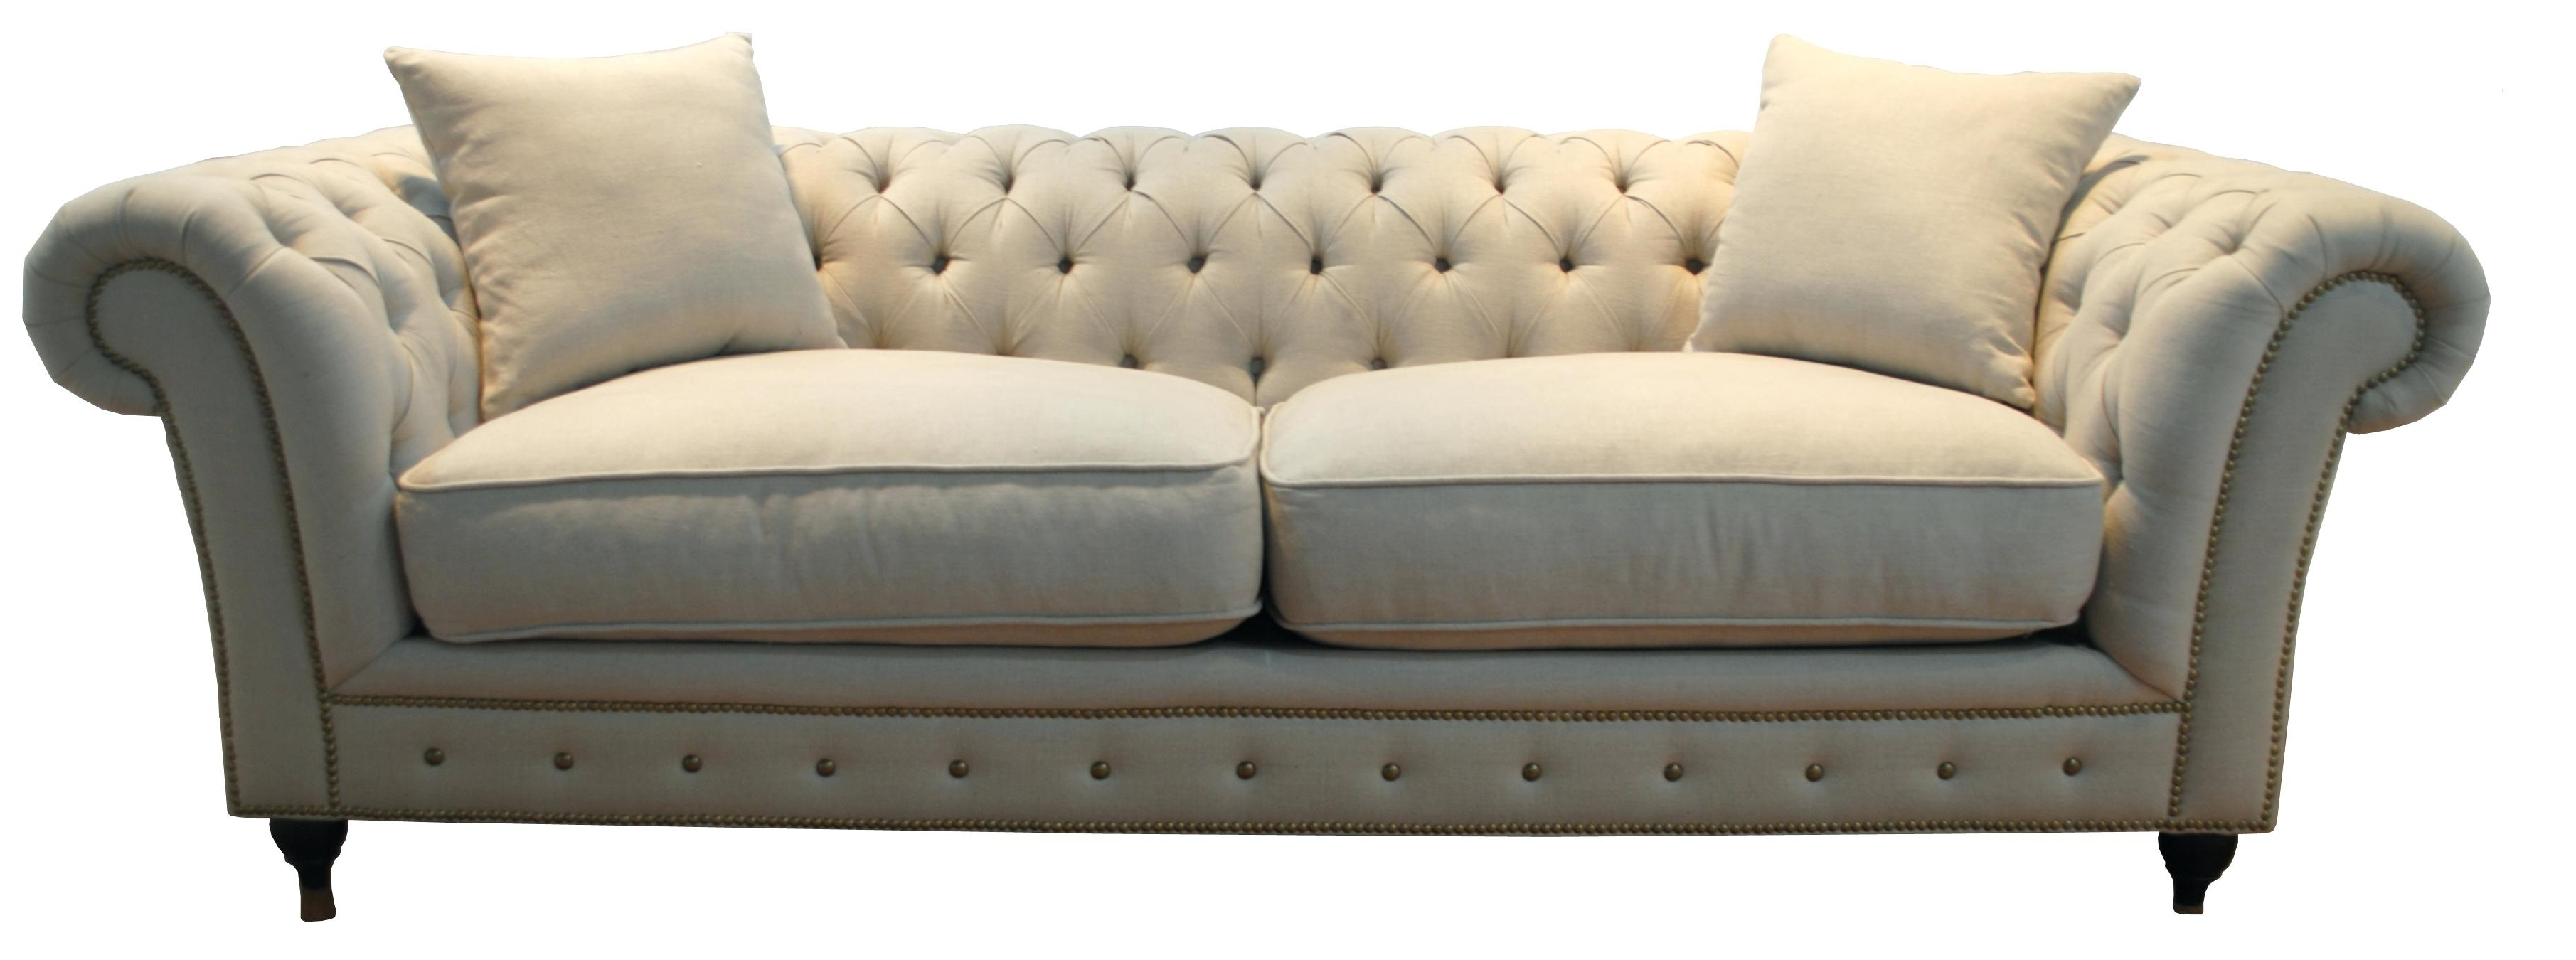 Well Known French Style Sofas Within Decoration: French Style Couch Full Size Of Moving Sofa Problem (View 13 of 15)